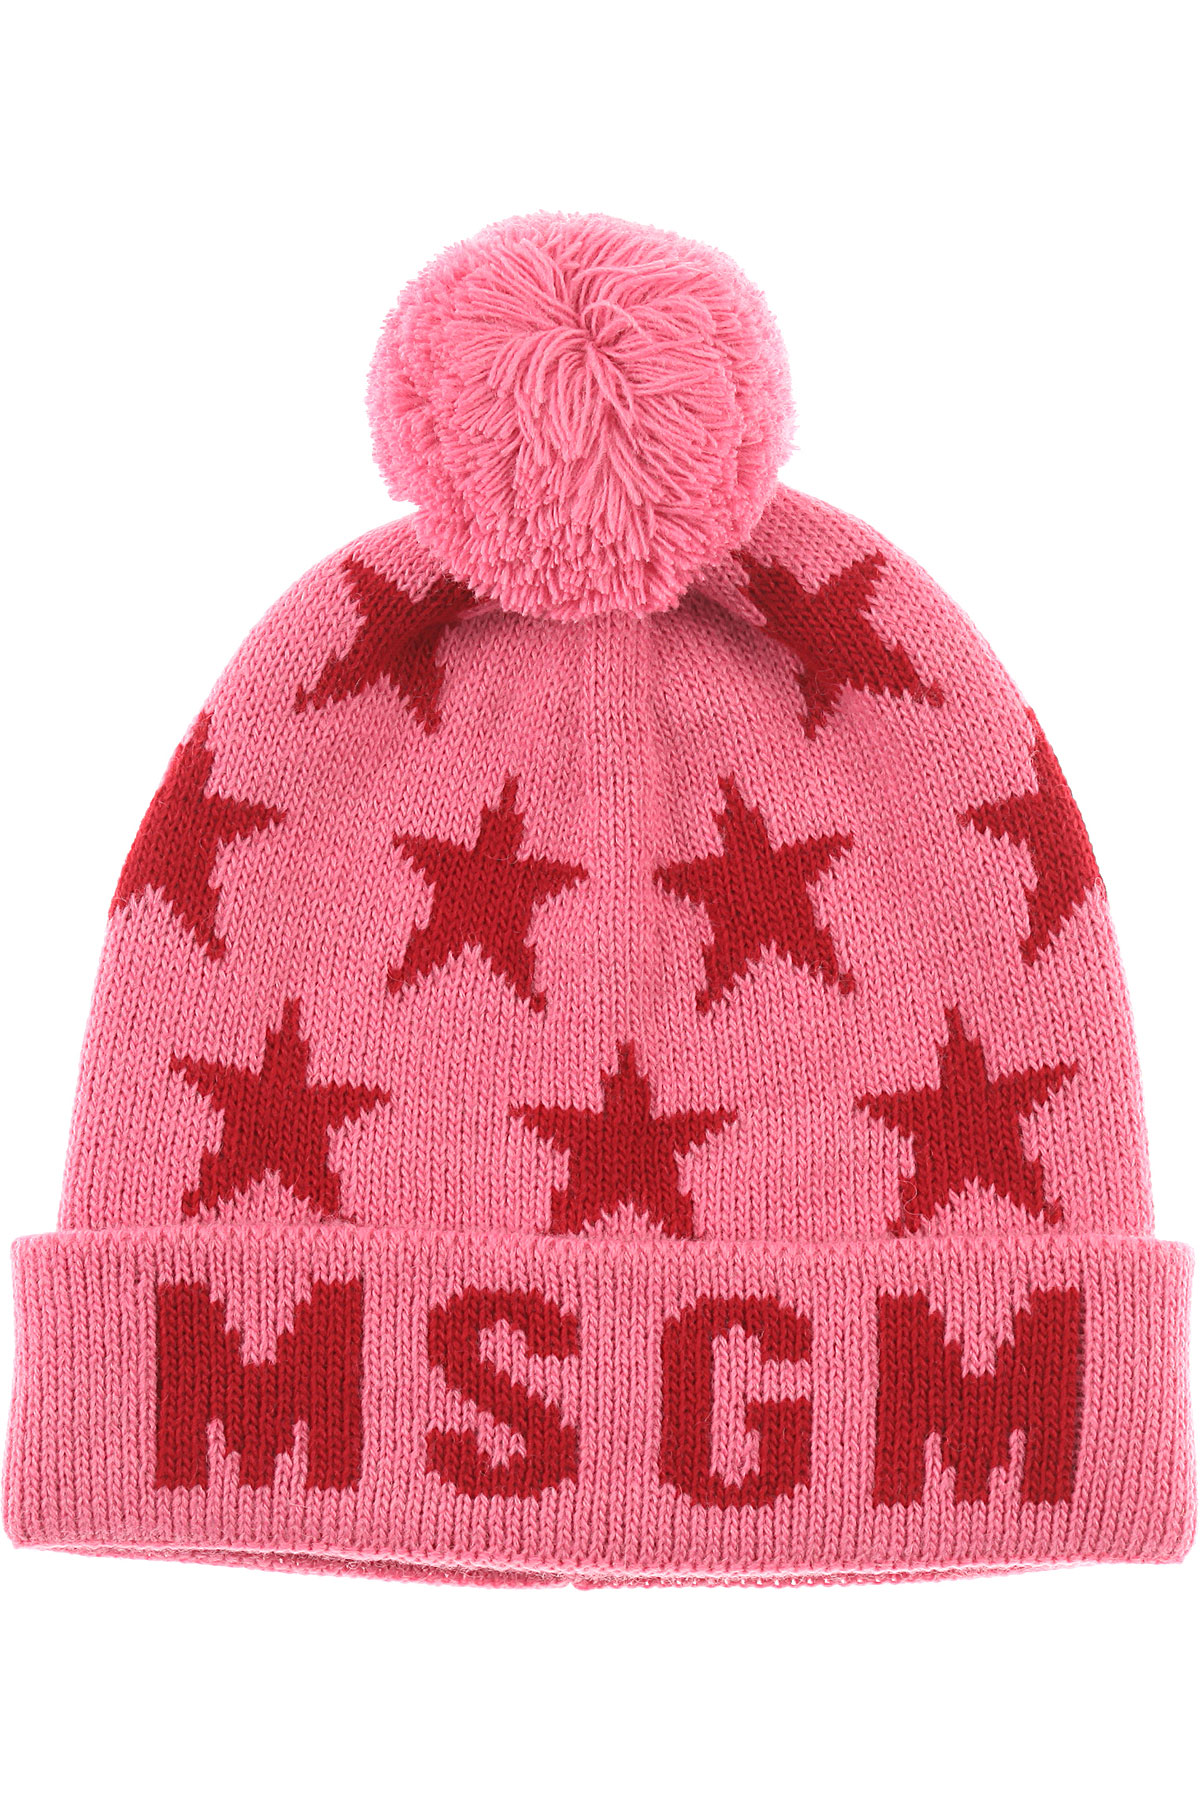 Image of MSGM Kids Hats for Girls, Pink, Acrylic, 2017